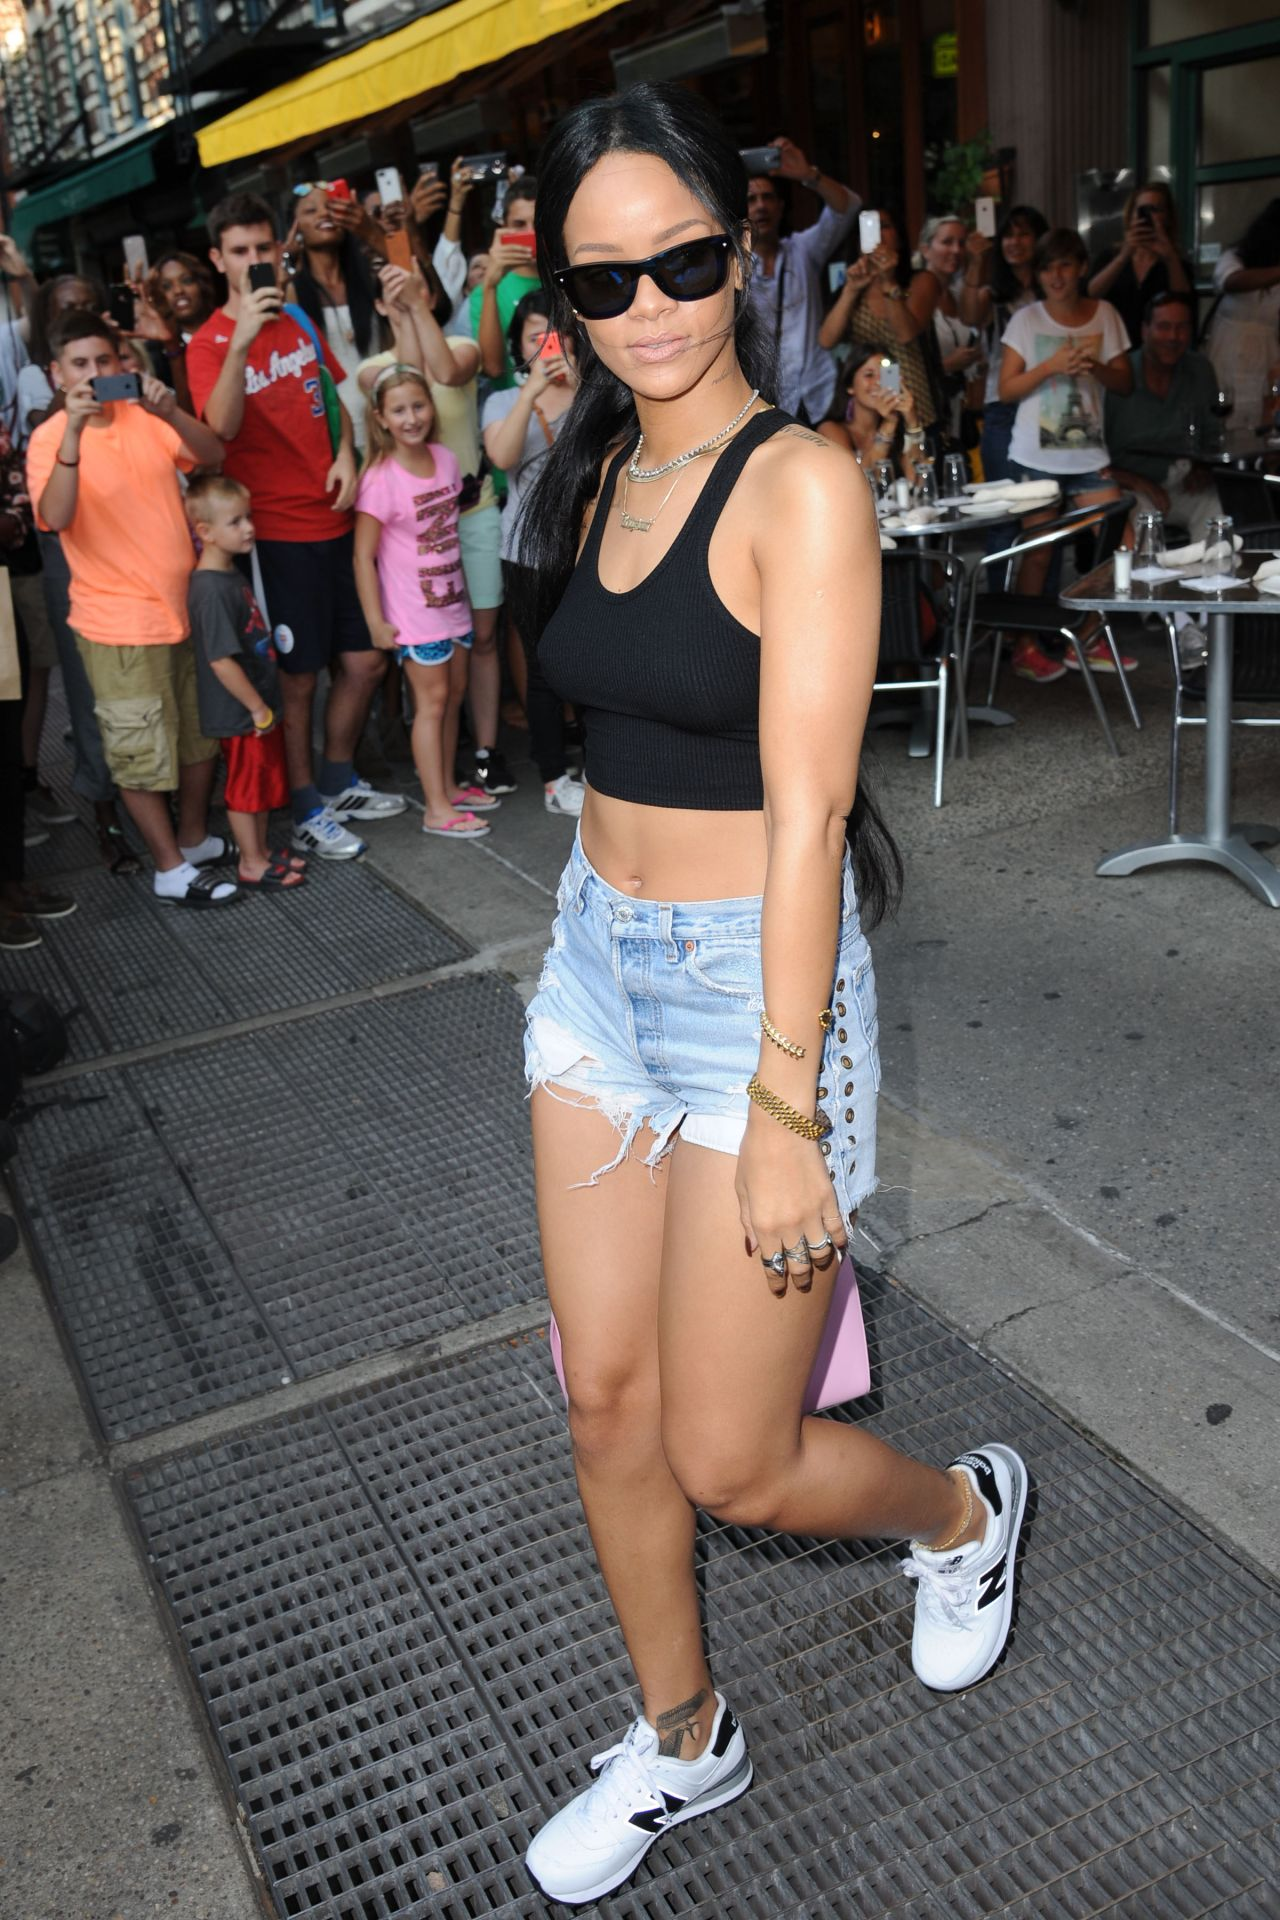 Rihanna Songs News, Pictures, and Videos | E! News